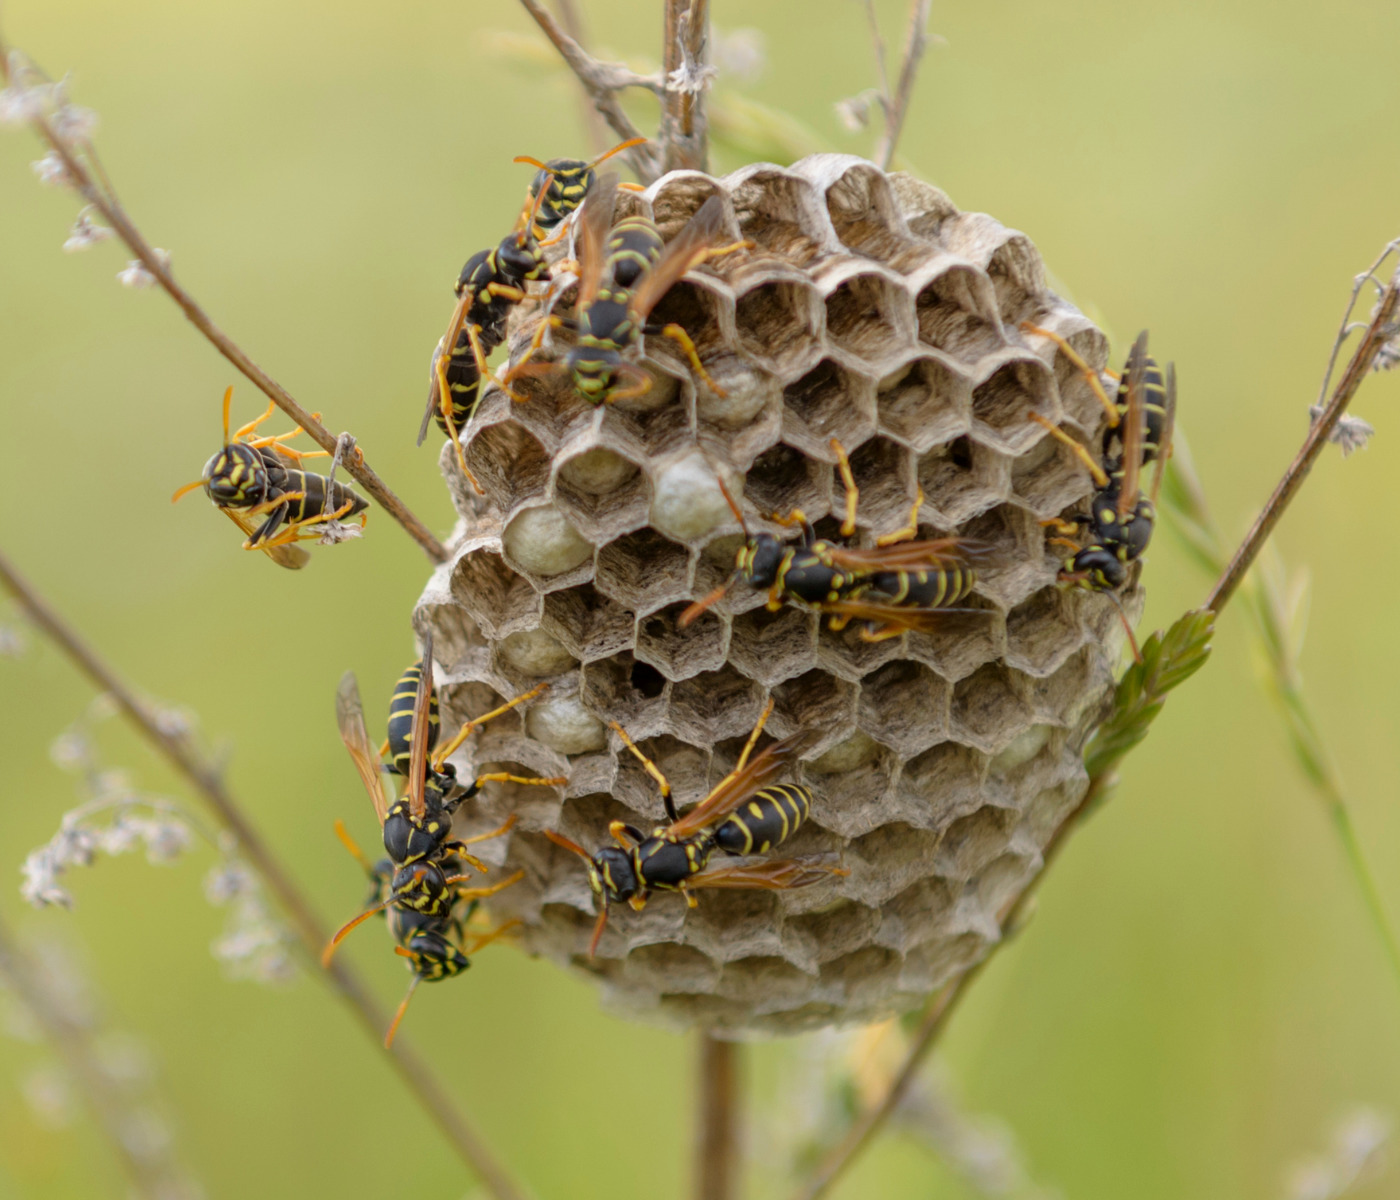 wasp nest with wasps on it